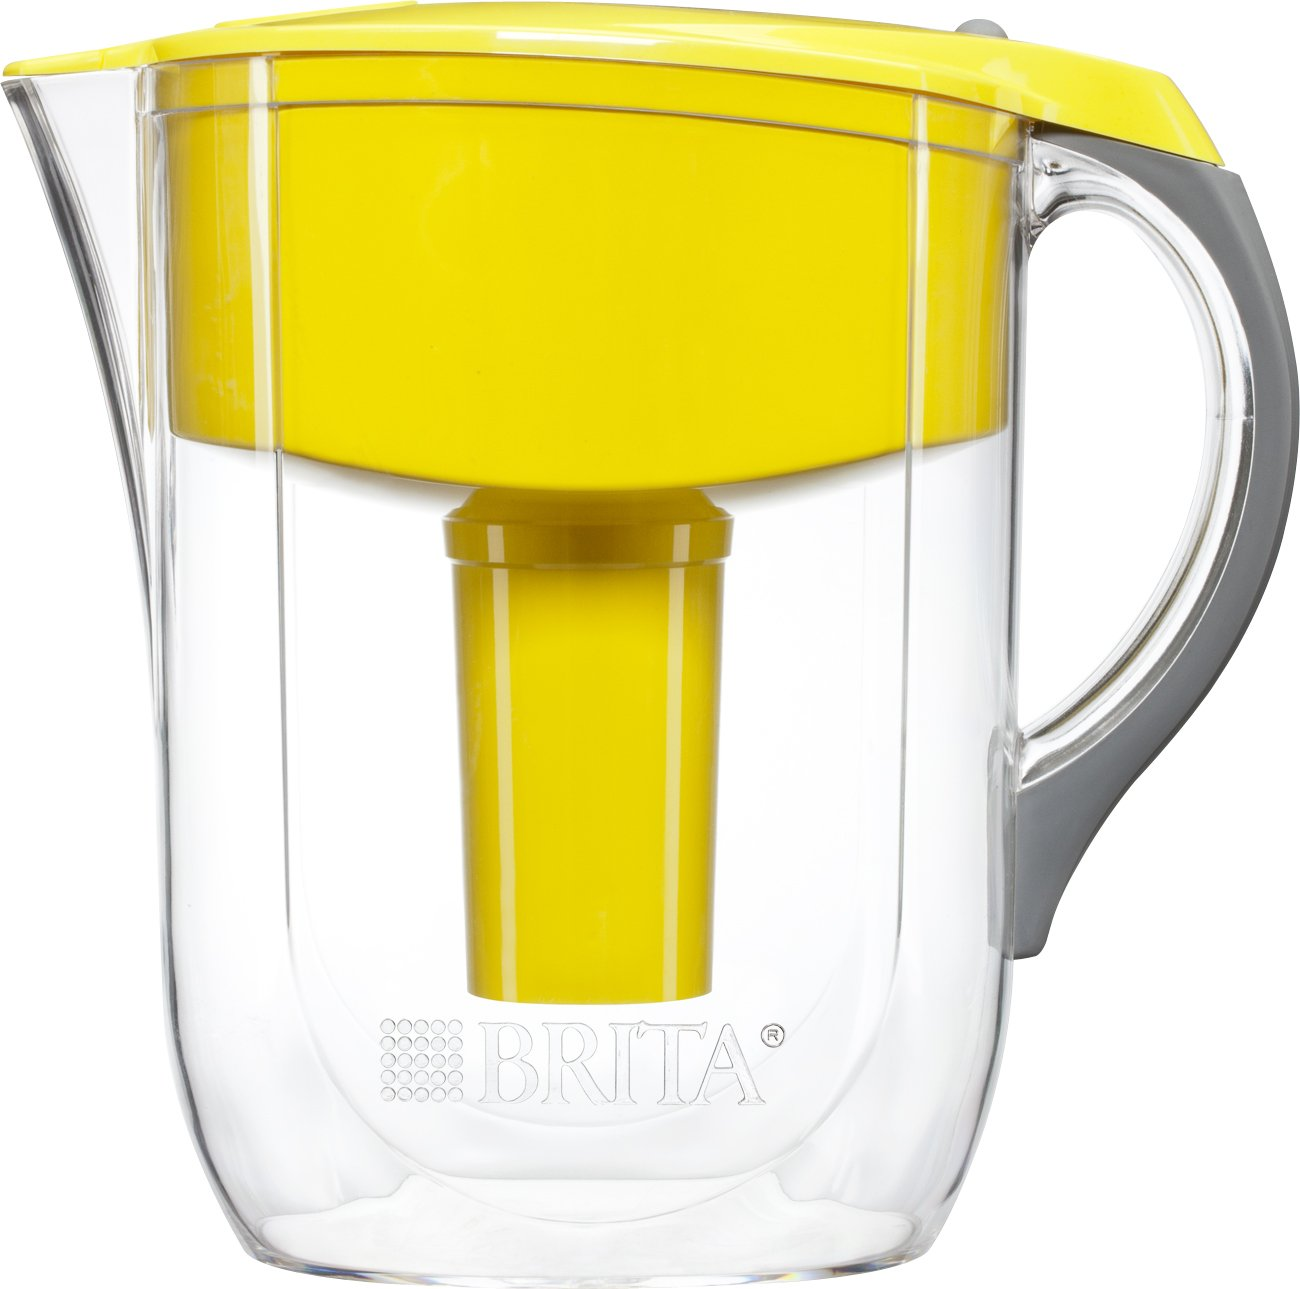 Amazon.com: Brita Grand Water Filter Pitcher, Yellow, 10 Cup: Kitchen U0026  Dining